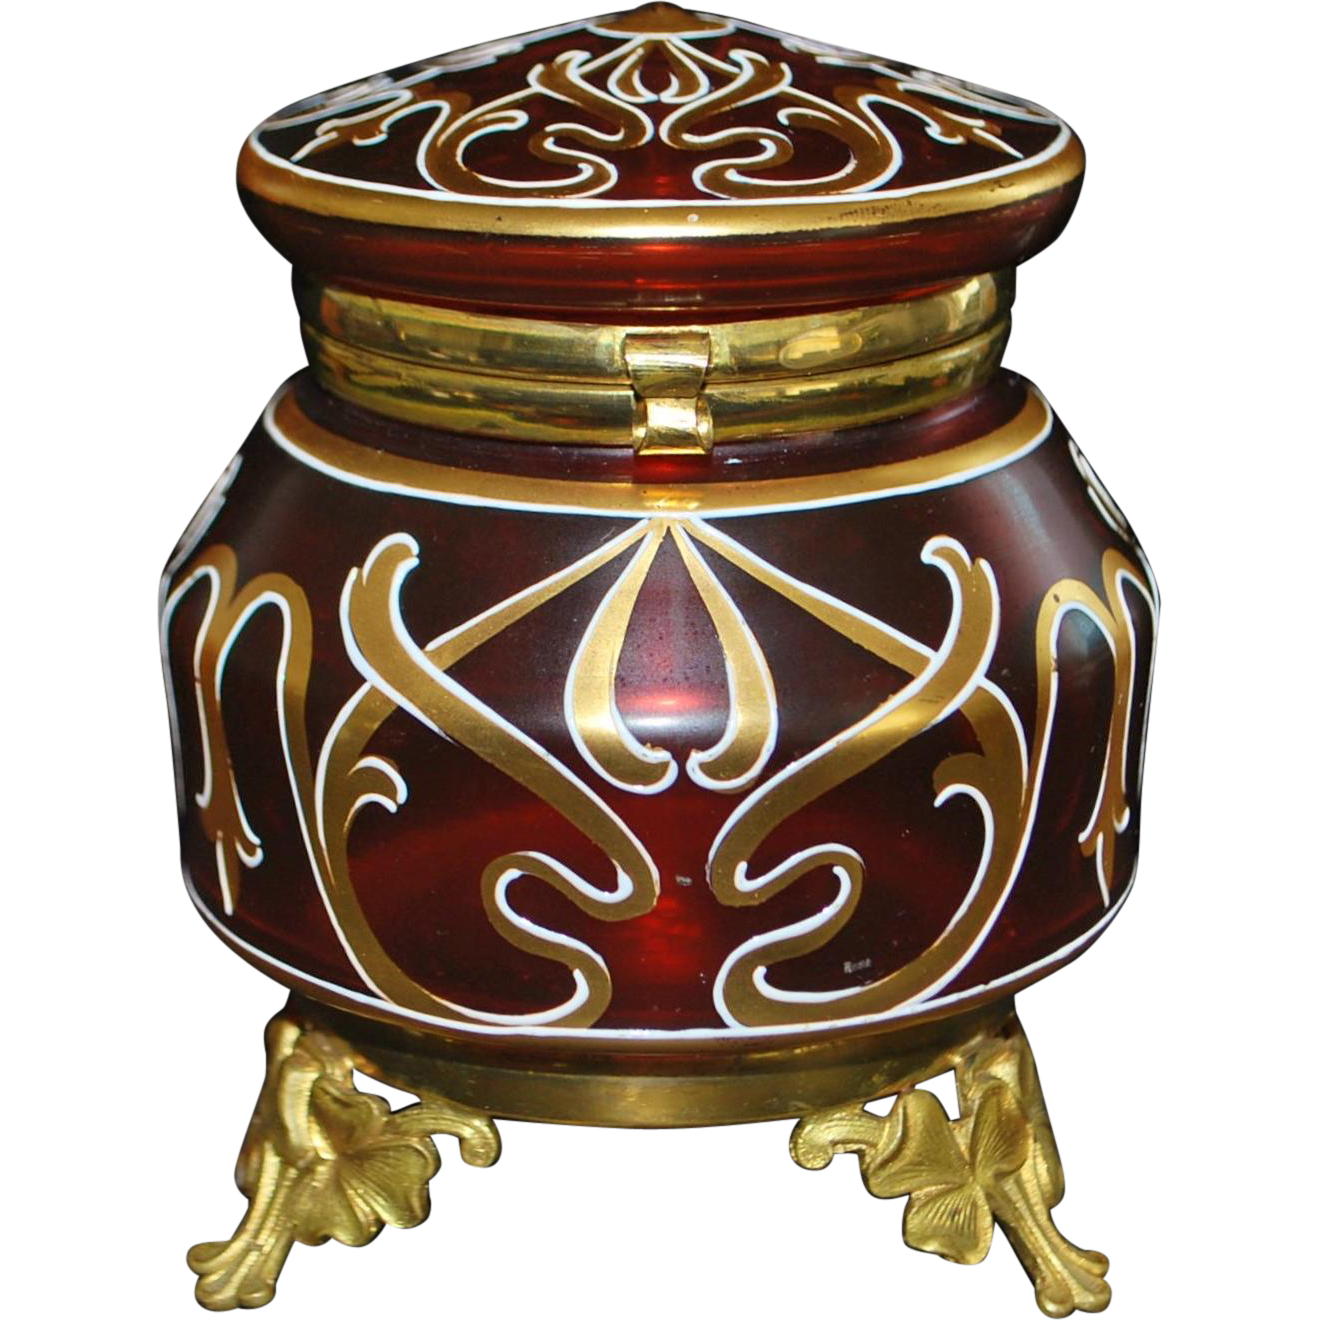 French Art Nouveau Ruby Red Gold Enamel Glass Table Box - 1900